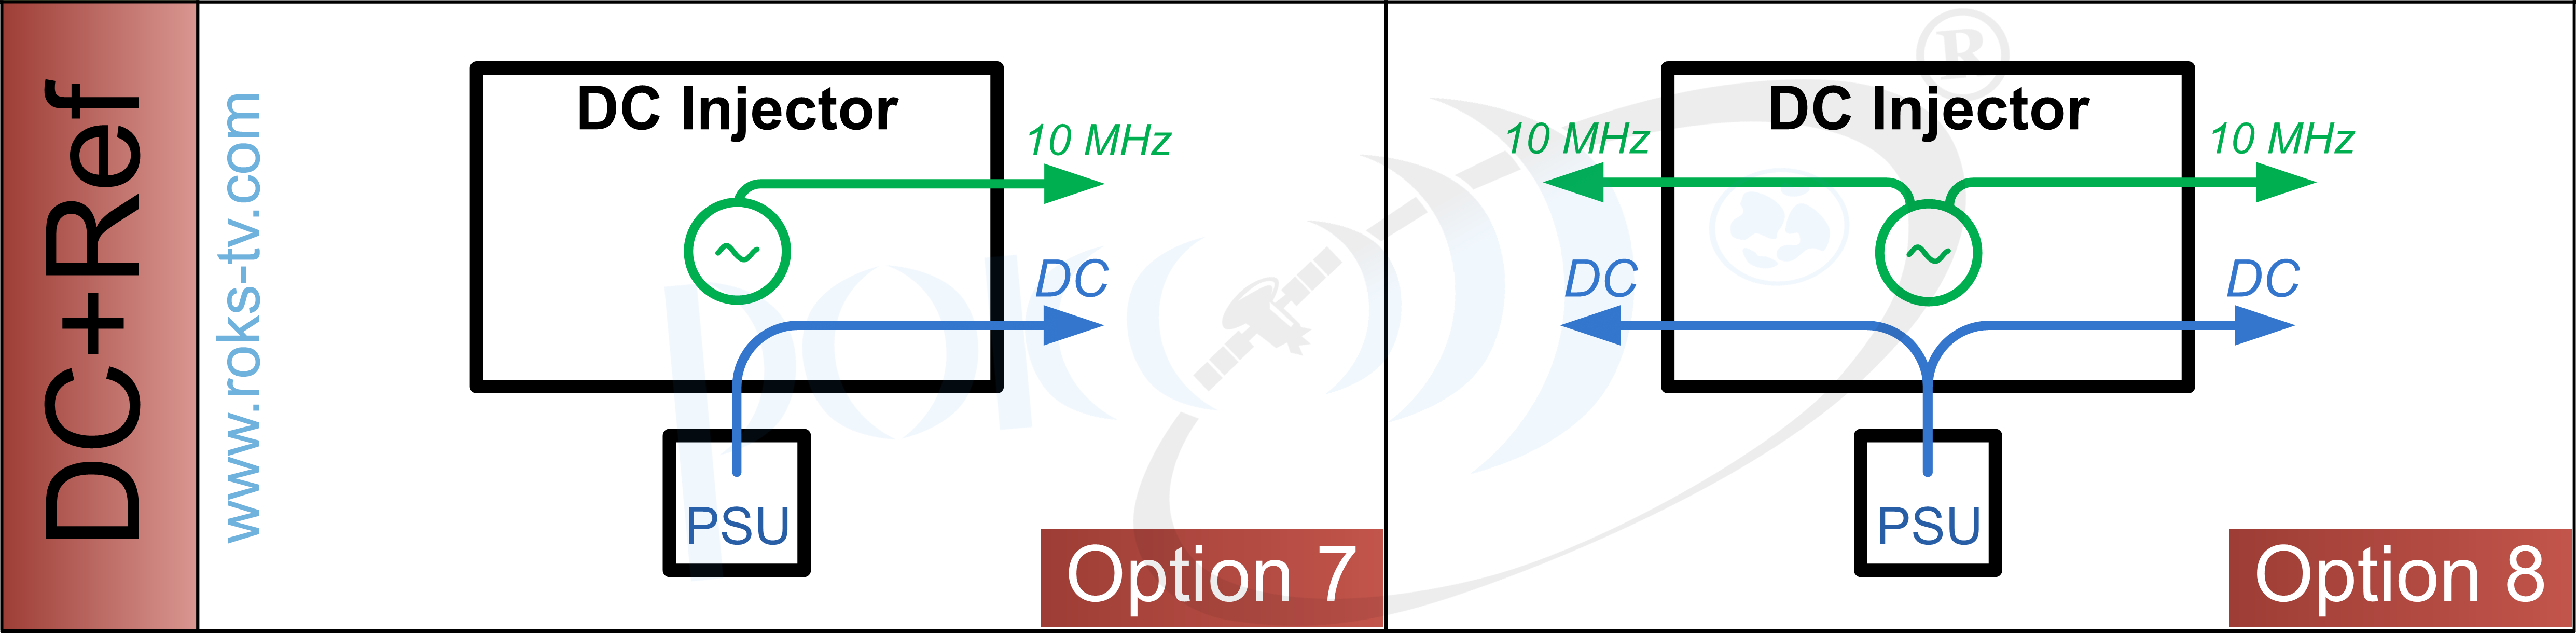 DC injector with DC pass and Reference